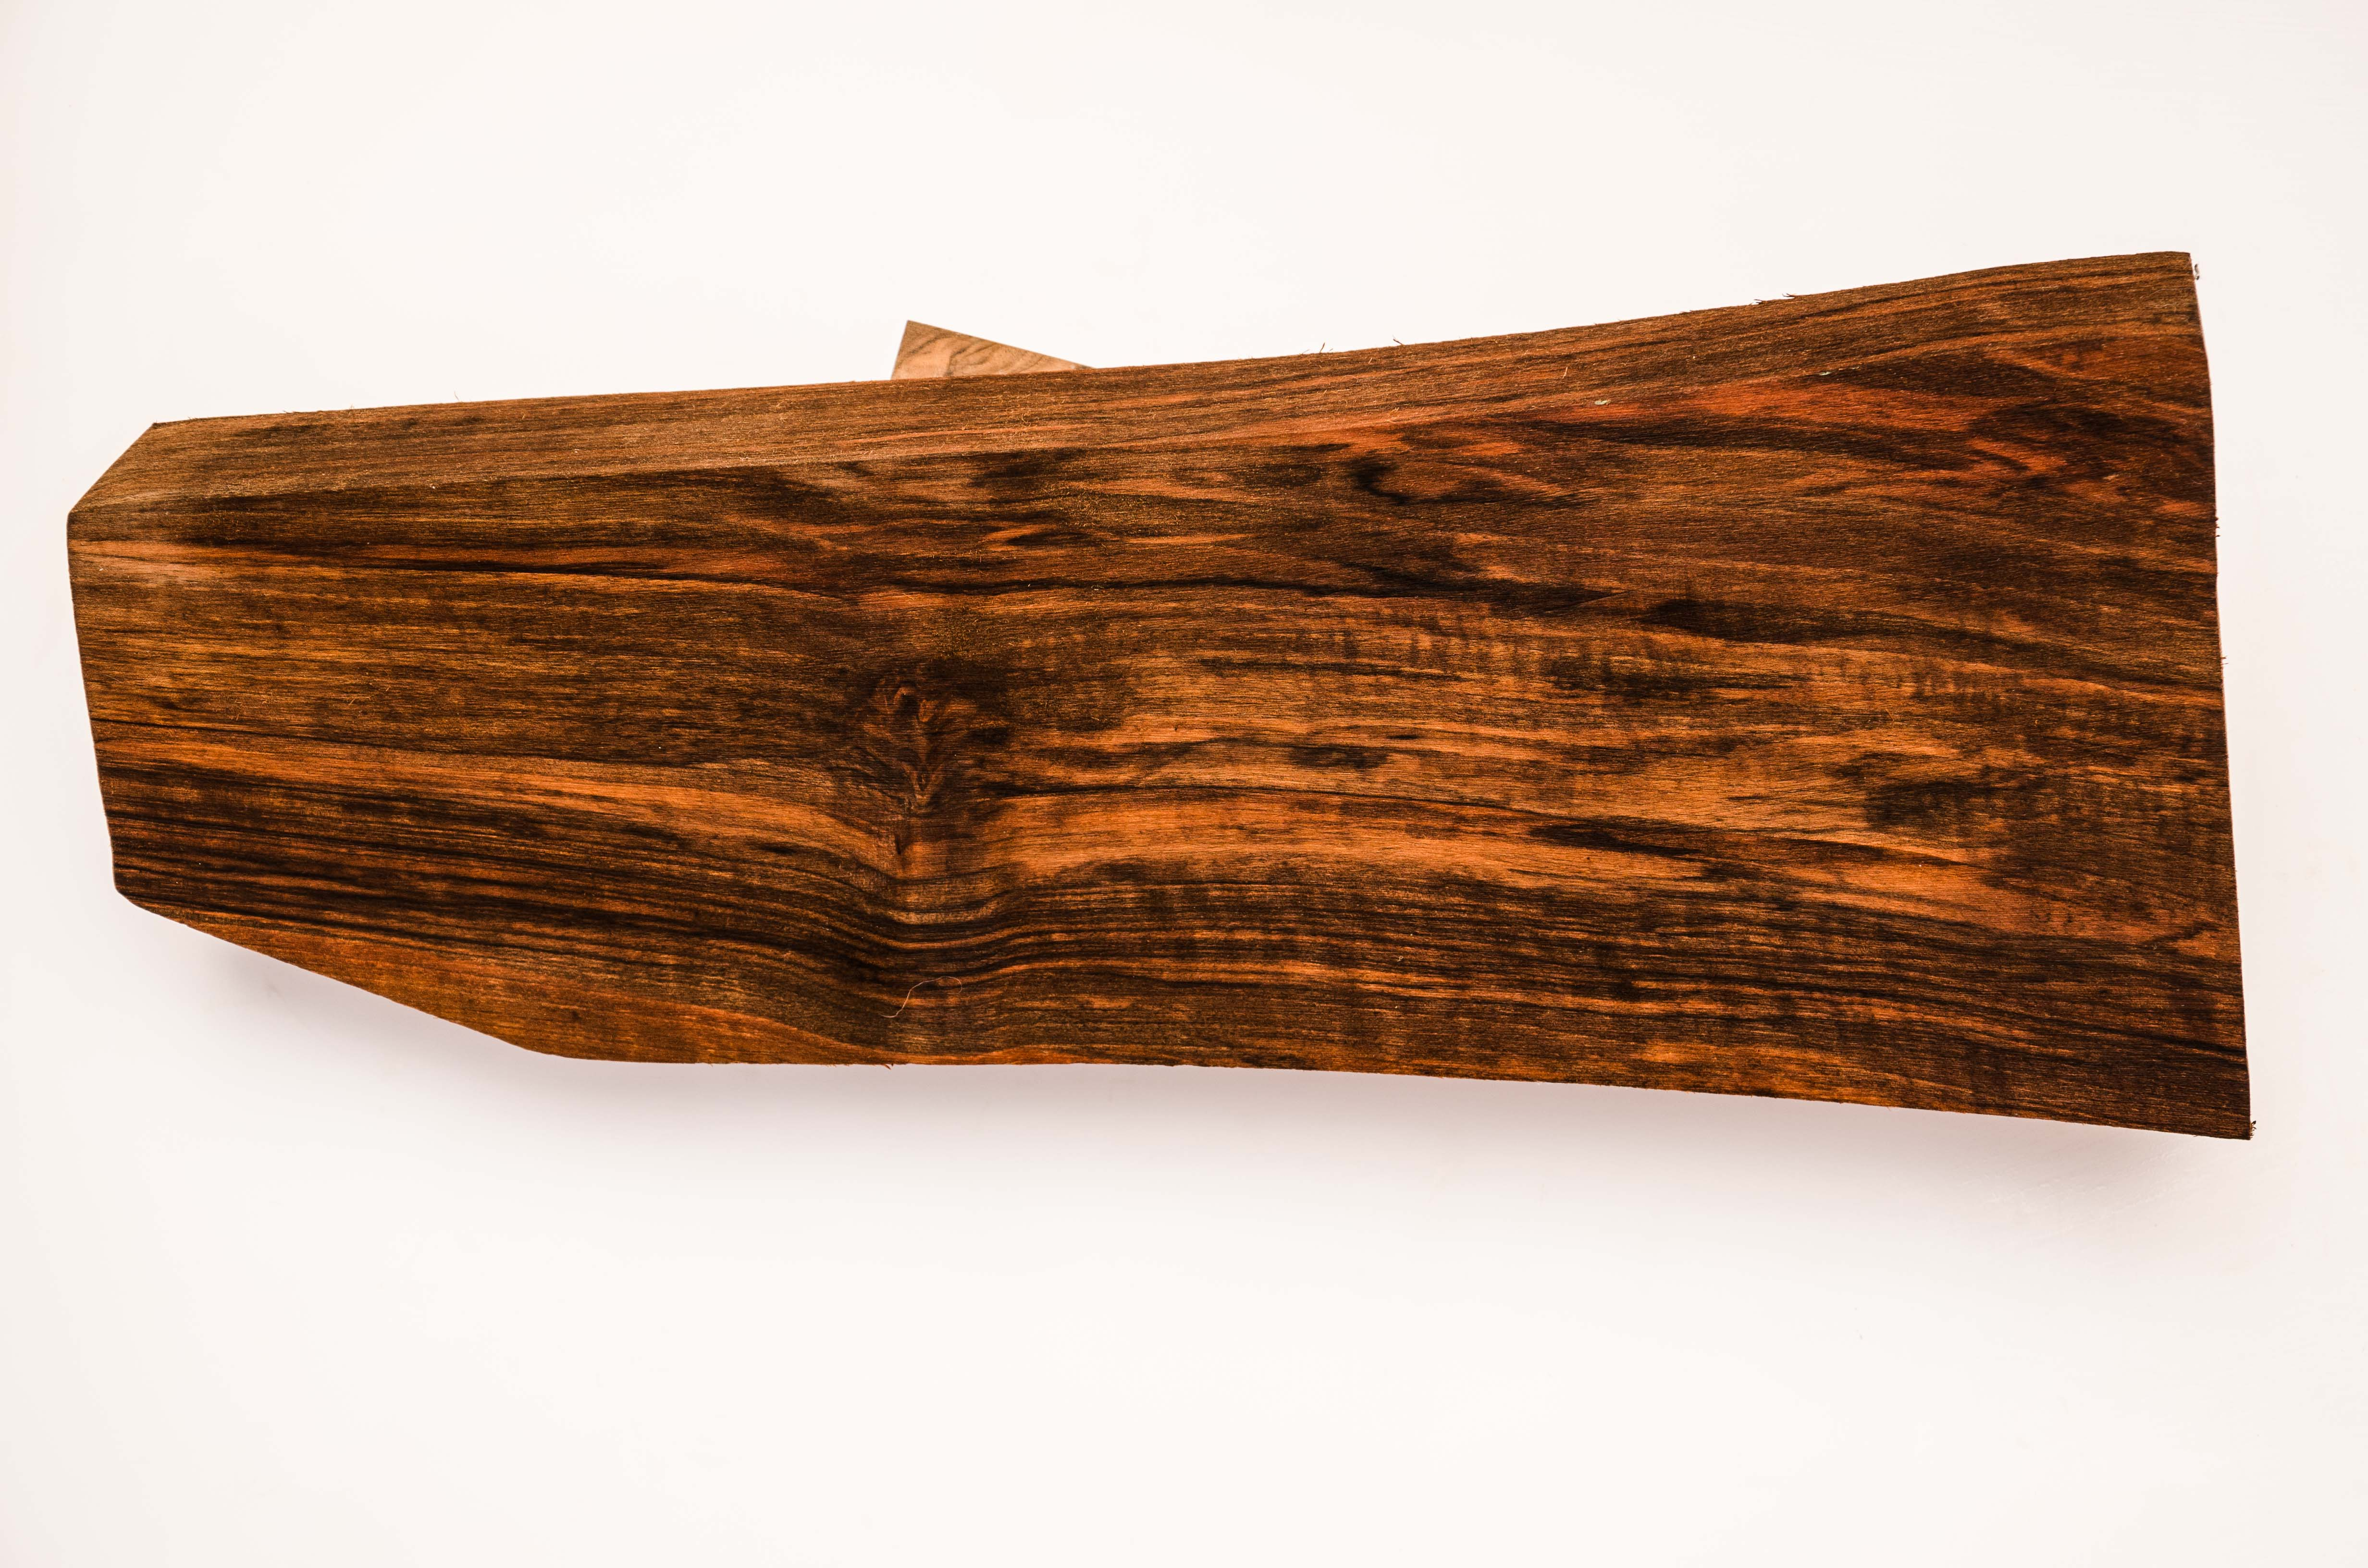 walnut_stock_blanks_for_guns_and_rifles-0536